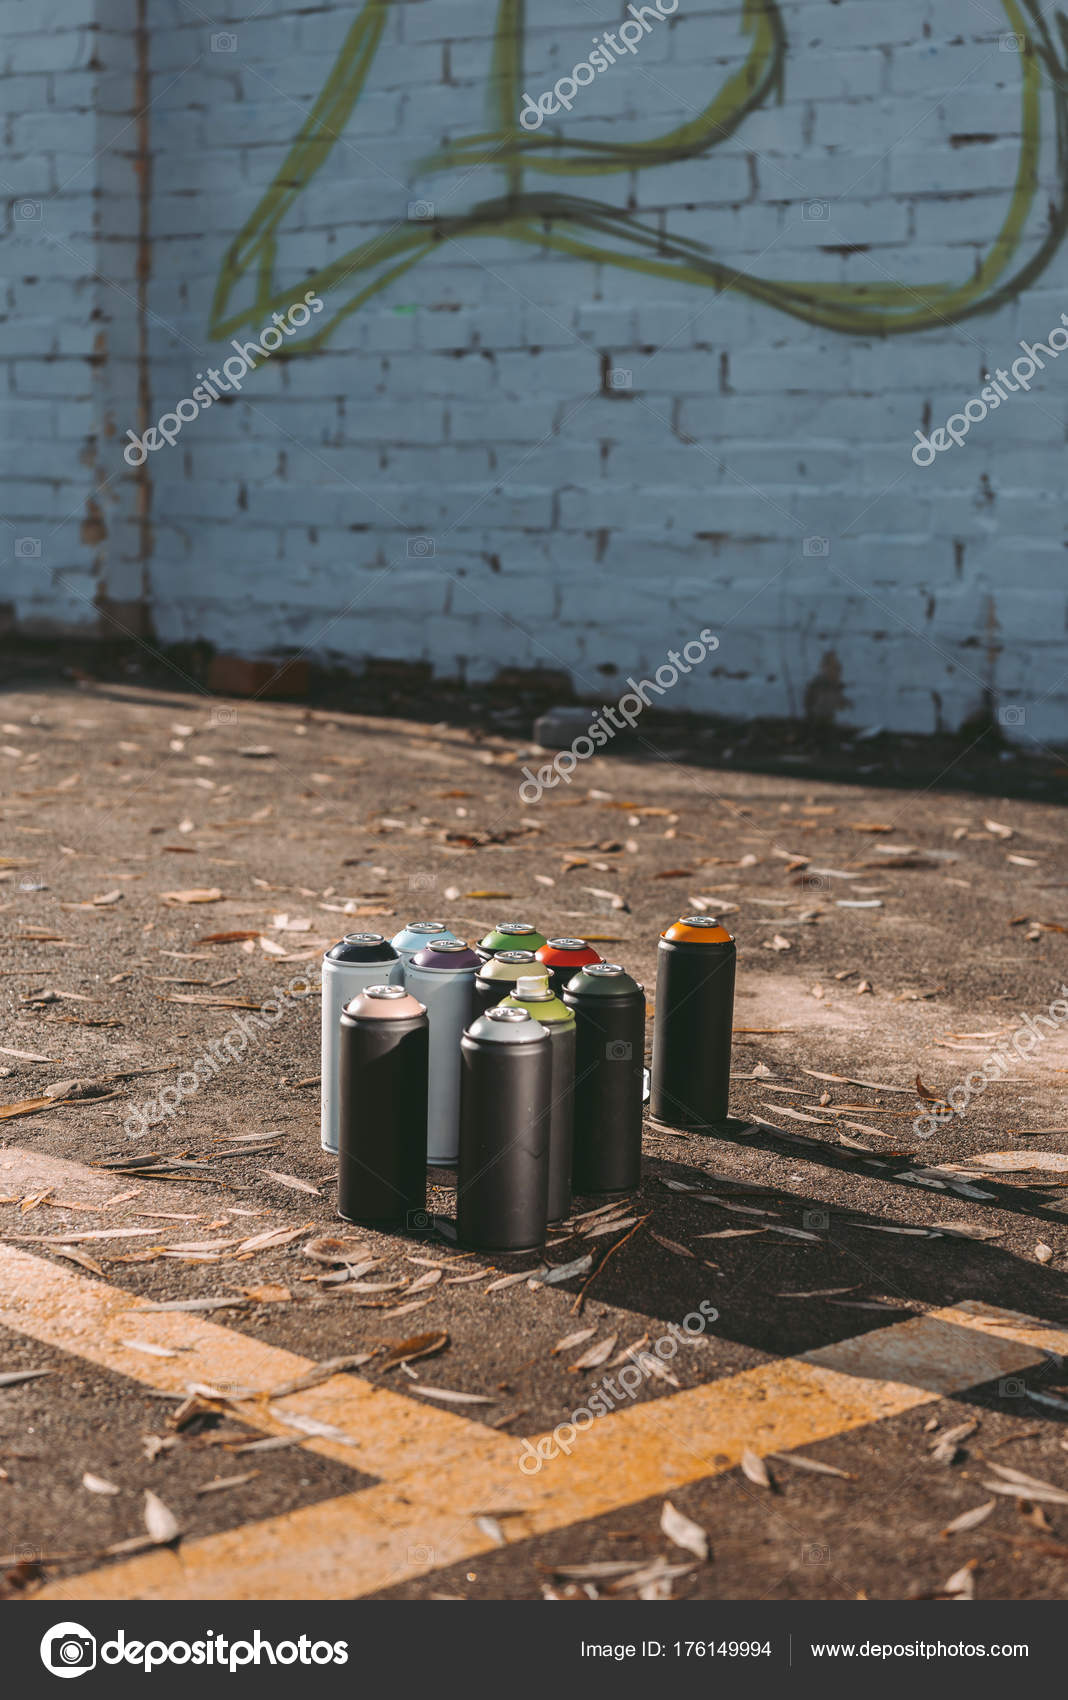 Cans With Colorful Spray Paint For Graffiti On Asphalt Photo By Vitalikradko